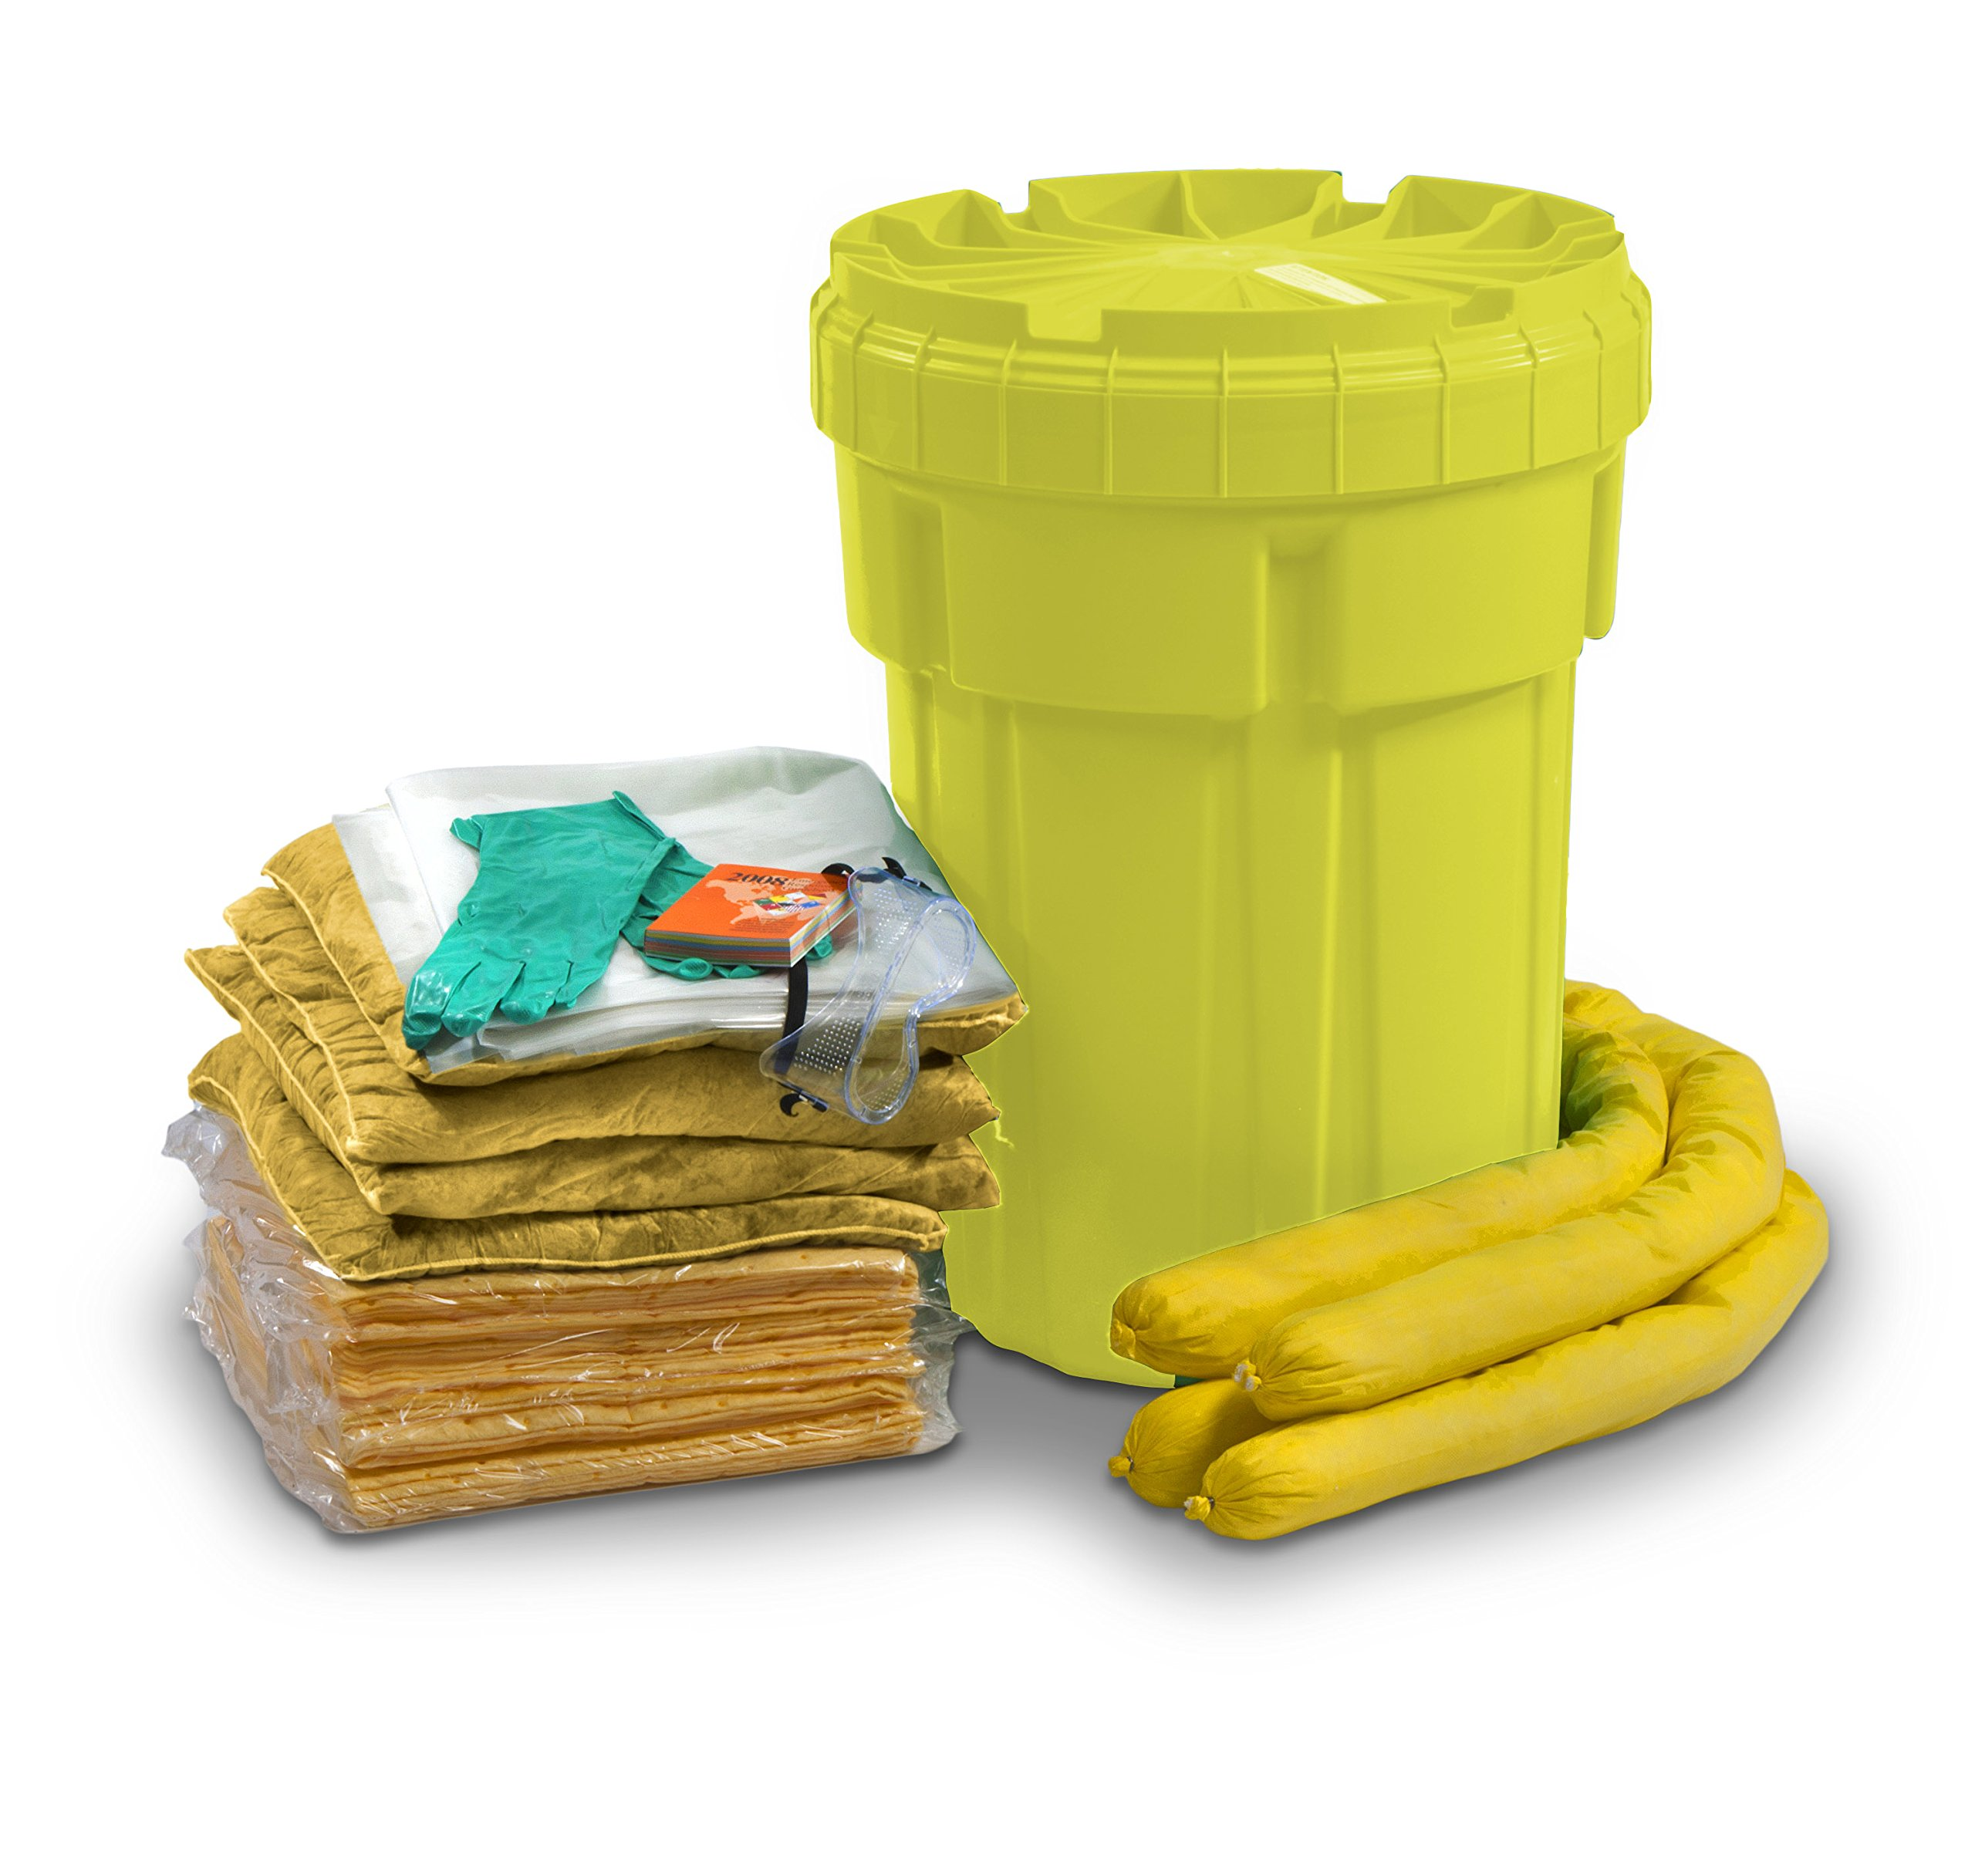 ESP SK-H30 56 Piece 30 Gallons Hazmat Absorbent Ecofriendly Spill Kit, 25 Gallons Absorbency, Yellow